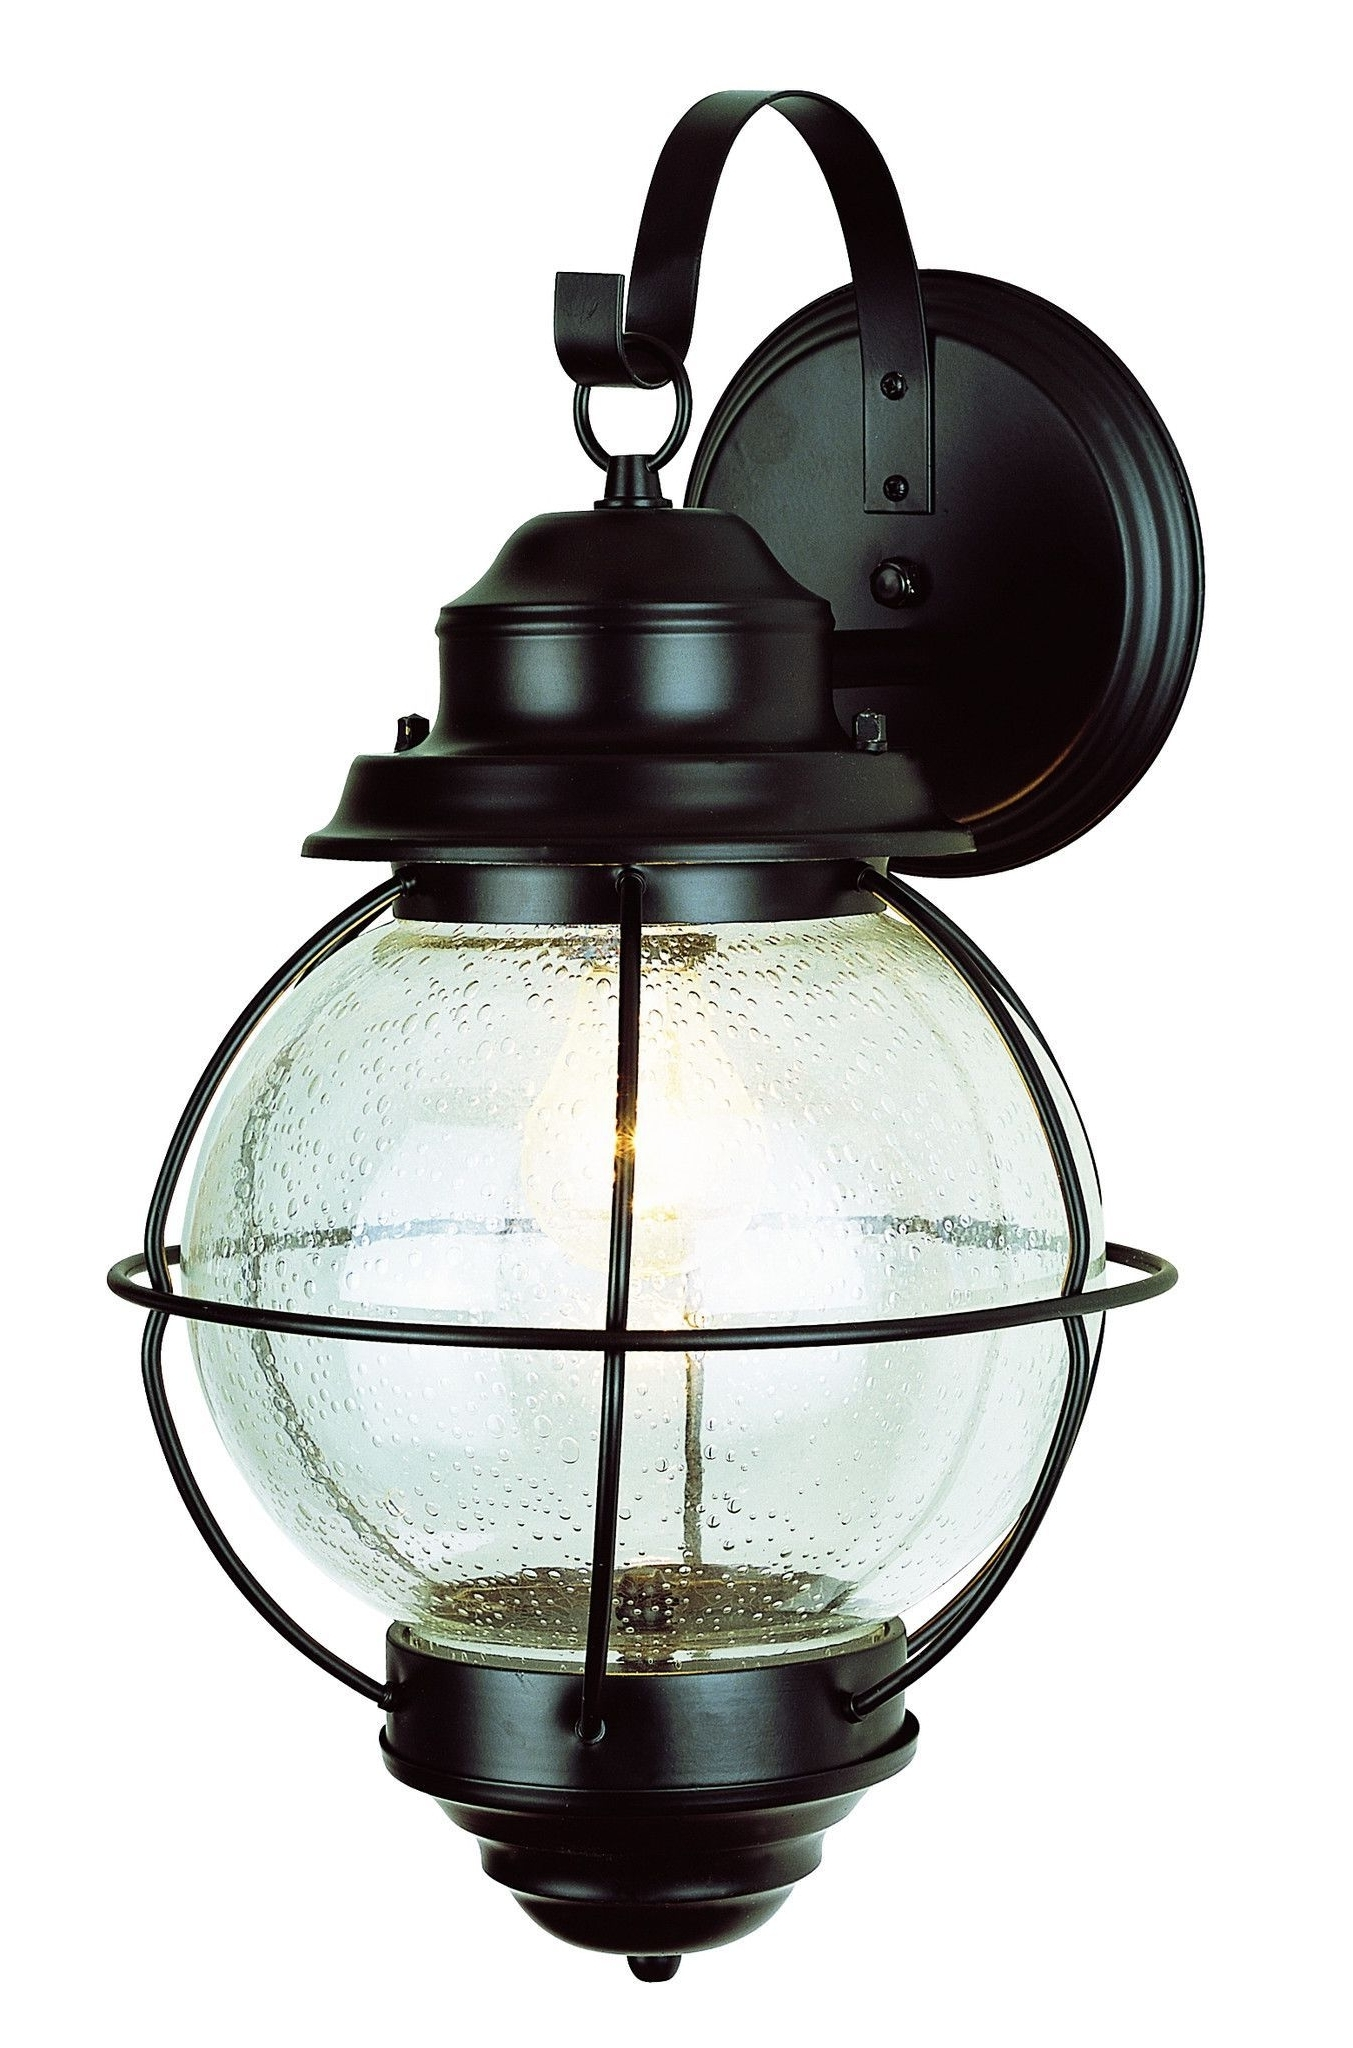 "Most Recently Released Outdoor Lighting Onion Lanterns Intended For Trans Globe Lighting 69904 Bk Onion Lantern Wall Mount 19"" Black (View 6 of 20)"